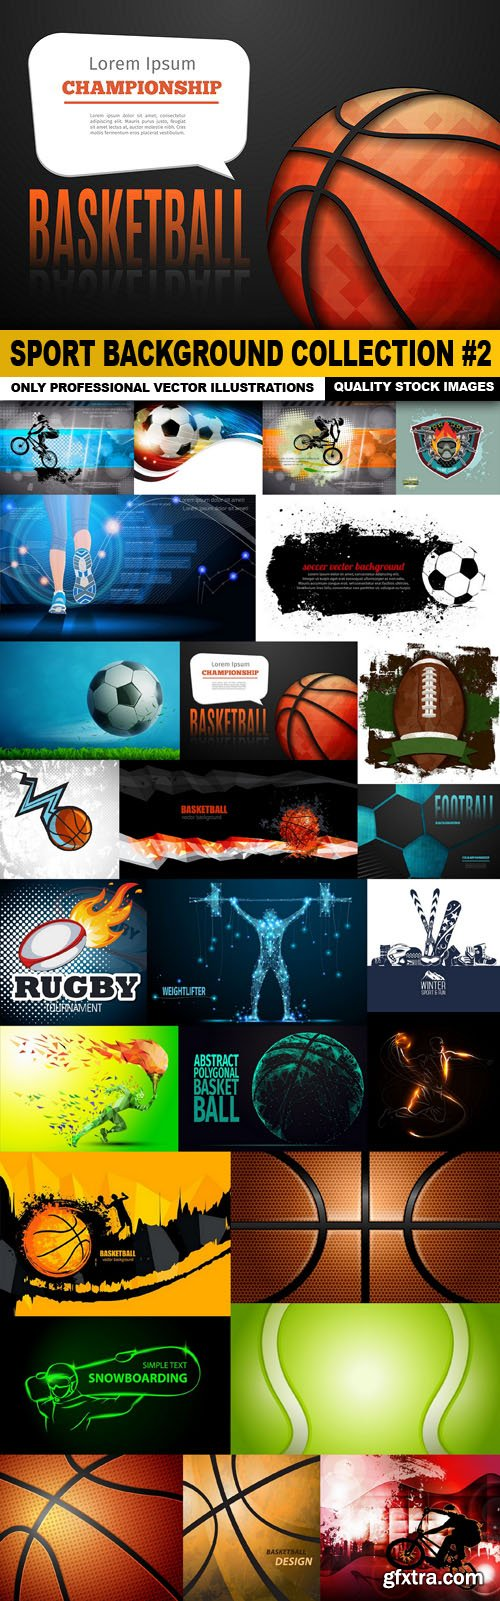 Sport Background Collection #2 - 25 Vector